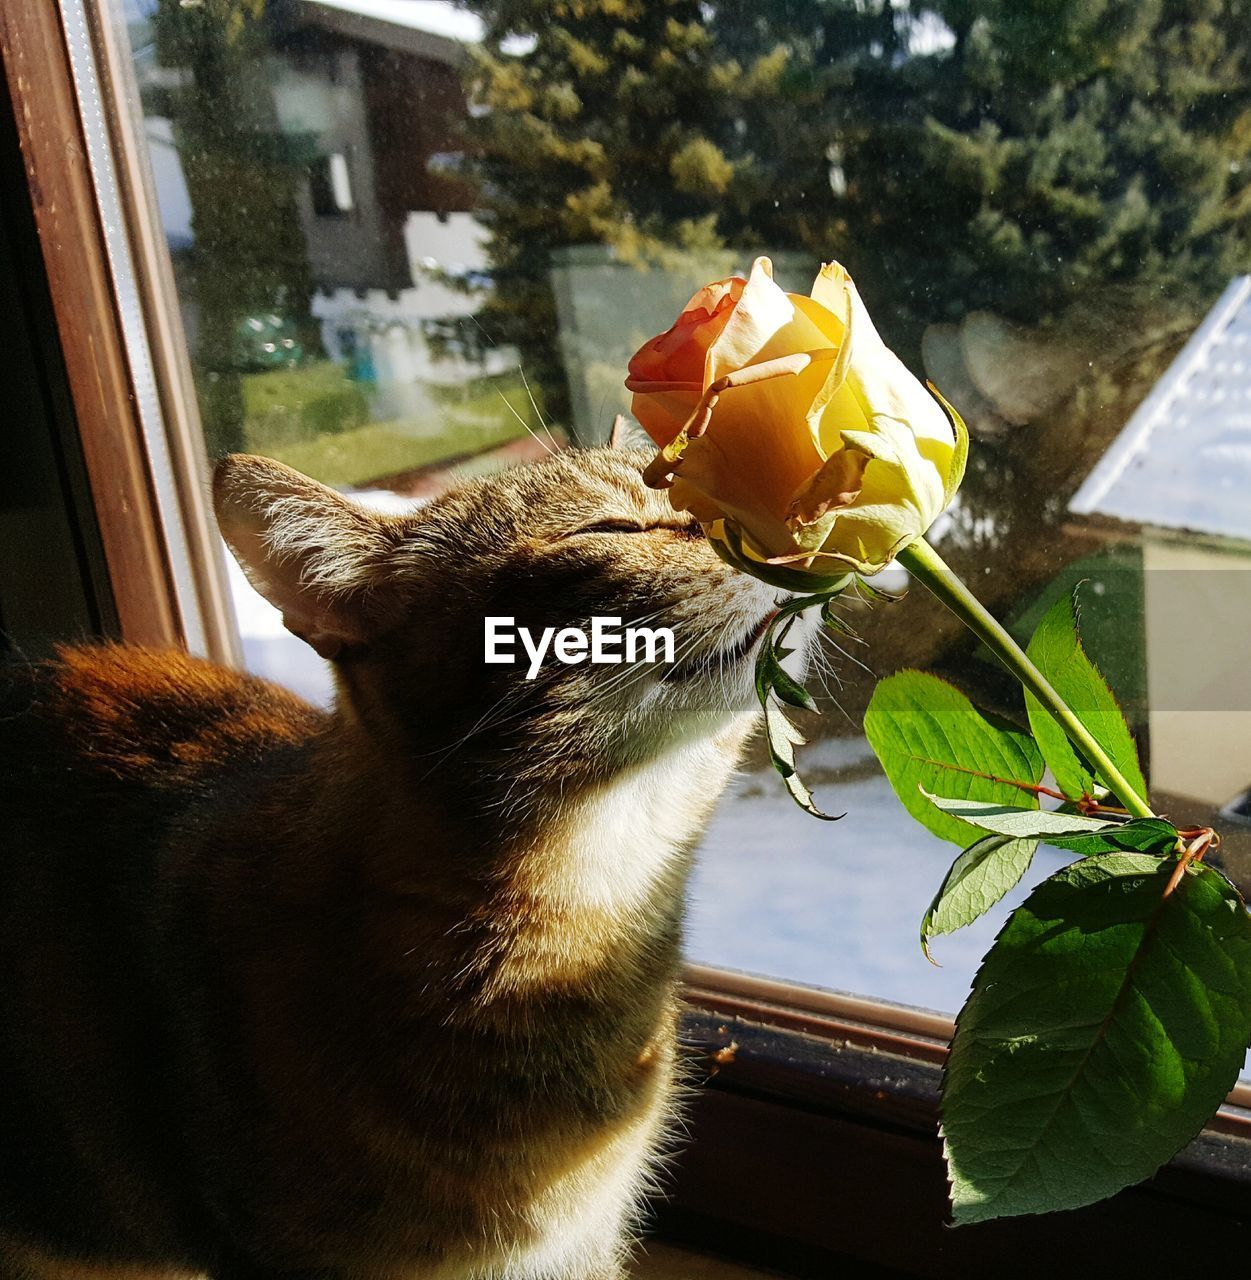 CLOSE-UP OF CAT BY WINDOW IN FLOWER